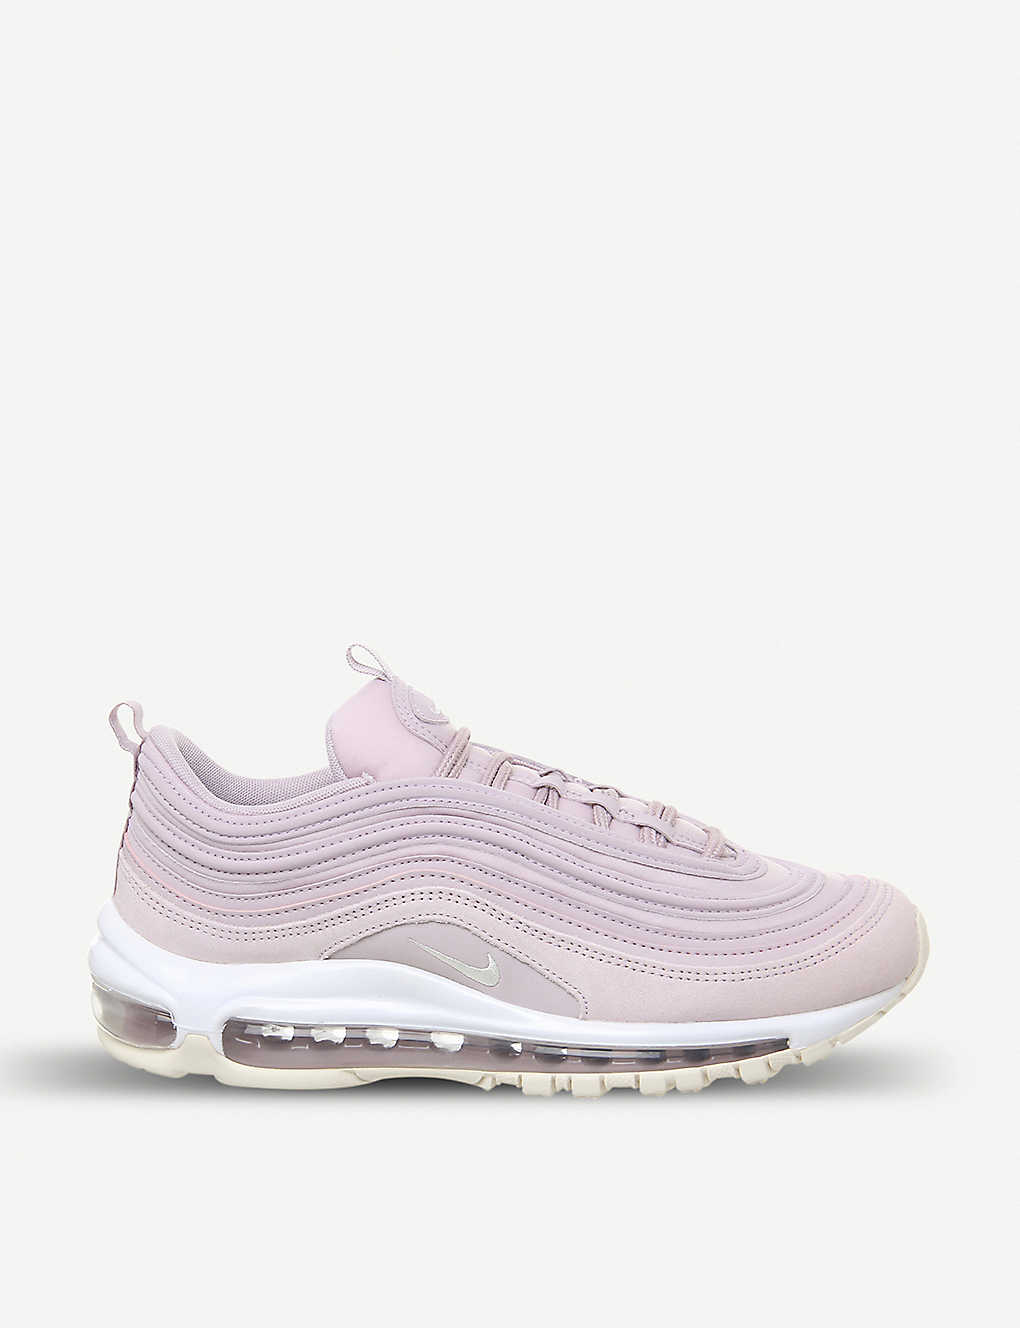 sports shoes dfdbc f4f5b Air Max 97 leather trainers